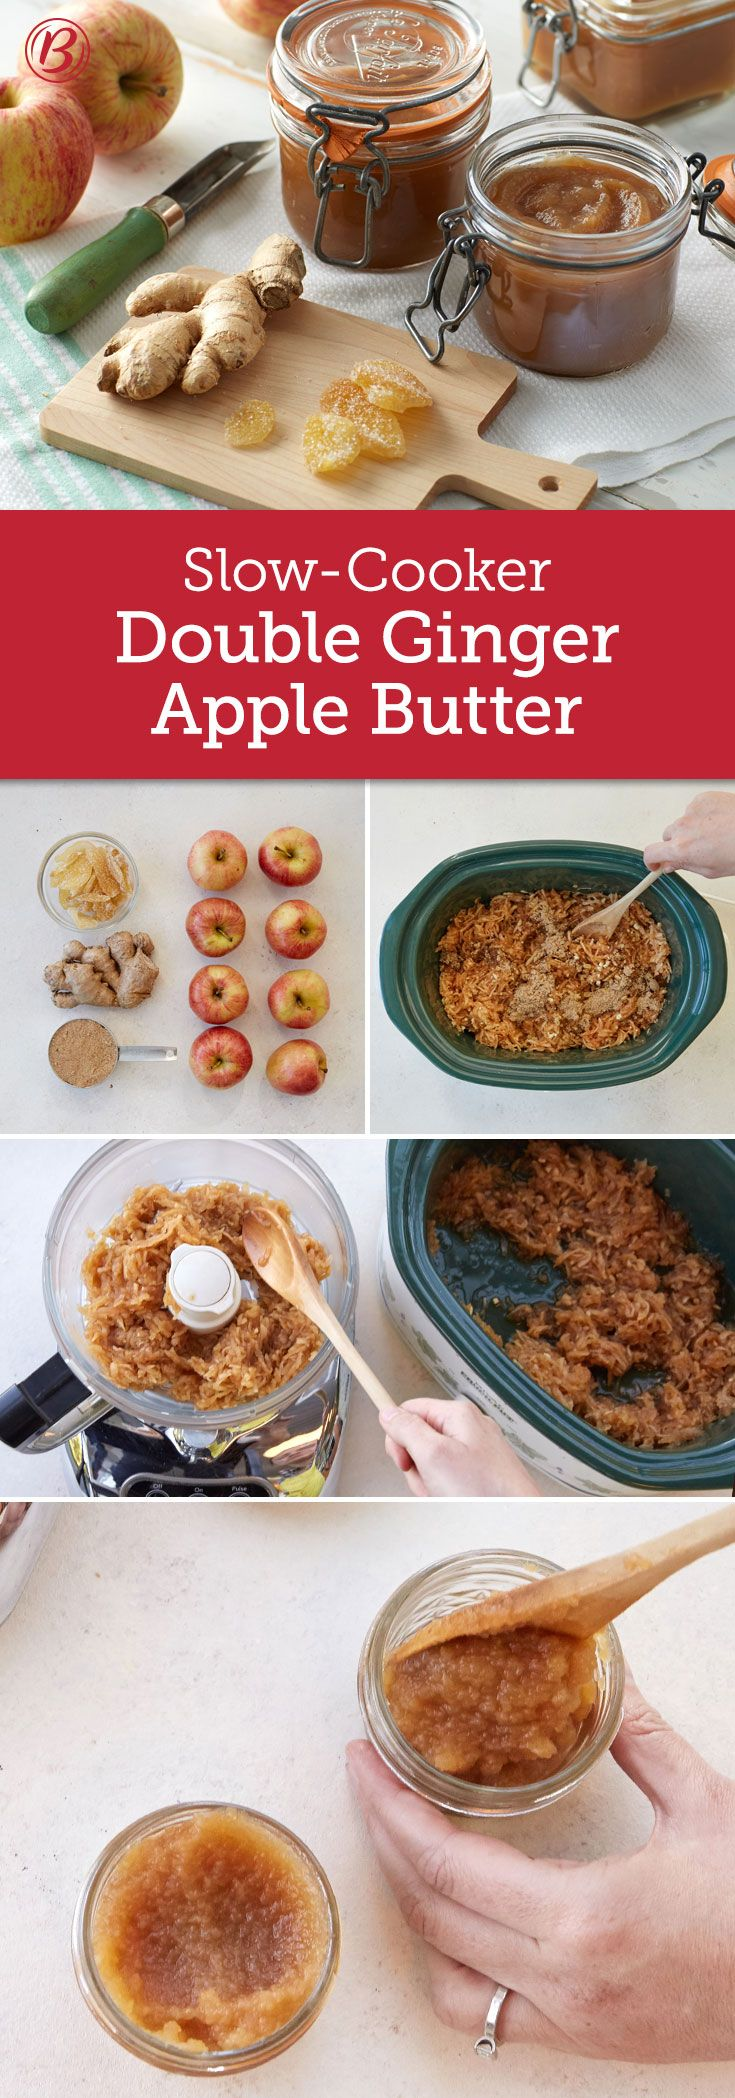 Crystallized ginger and fresh gingerroot give this easy, slow-cooker apple butter a one-two punch of flavor your friends and family will love. Be sure to let the apple butter cool at least 15 minutes before blending--safety first!